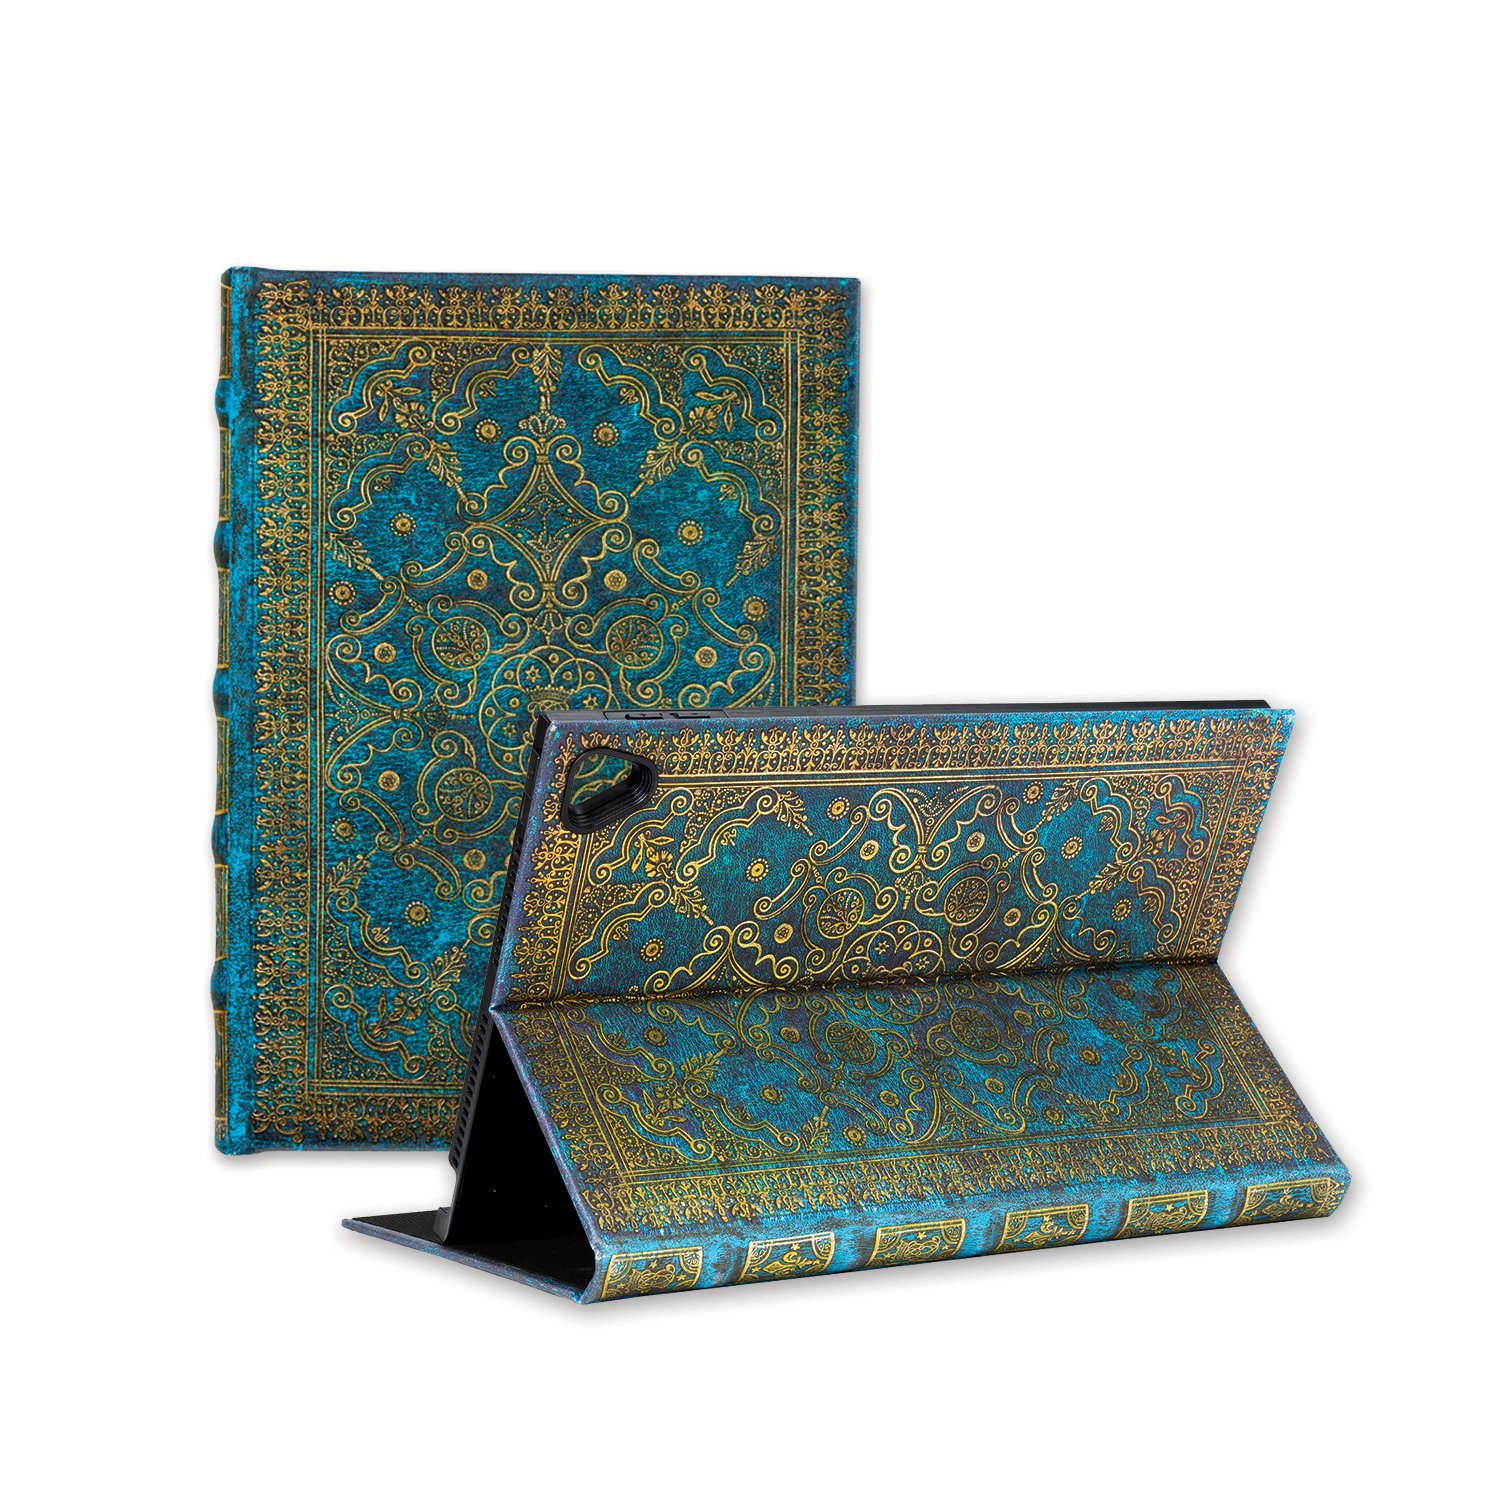 Paperblanks eXchange case for Apple iPad Pro 9.7 / iPad Air 2, Infinite Viewing Angle Case – Azure Design